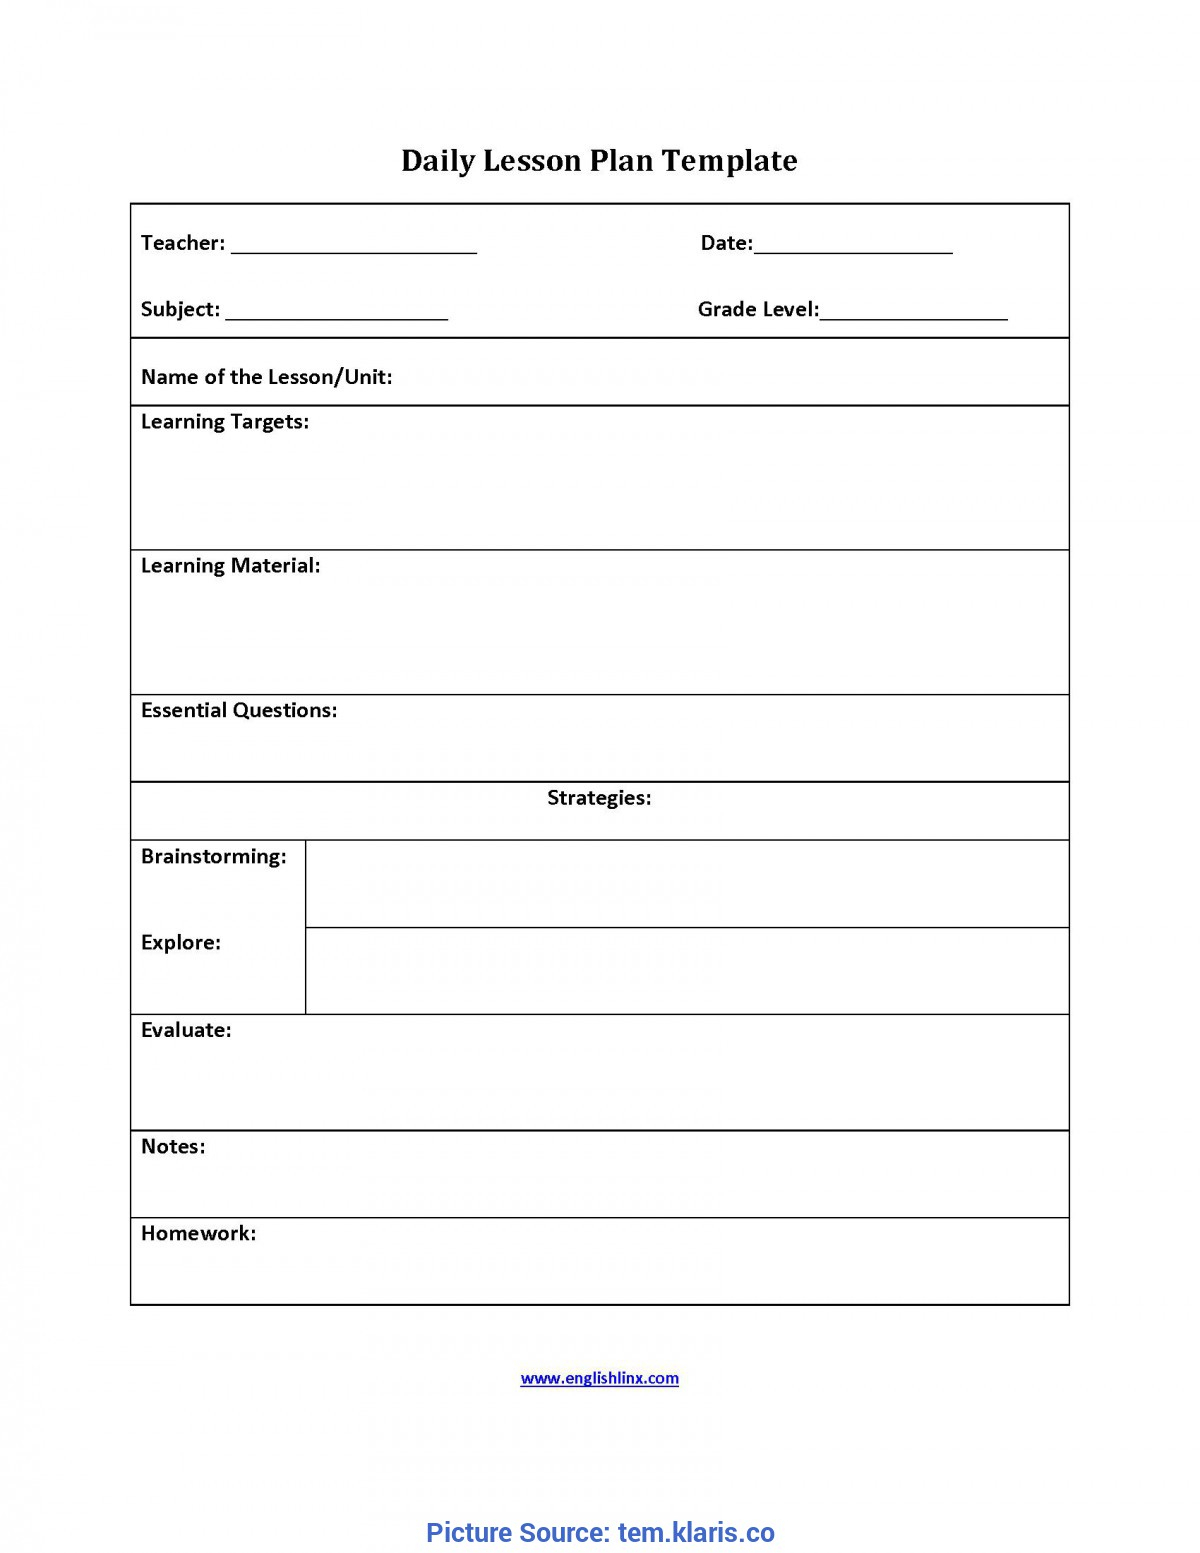 Newest Lesson Plan For Teachers Templates Nursing Teaching pertaining to Blank Training Plan Template